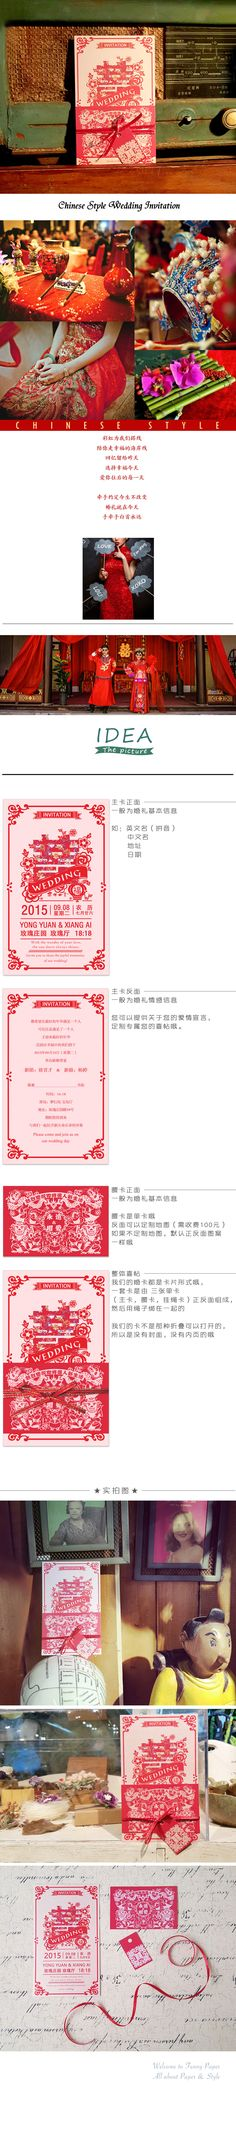 A Chinese and American Wedding Styled Shoot  combining of cultures - fresh invitation card wedding singapore